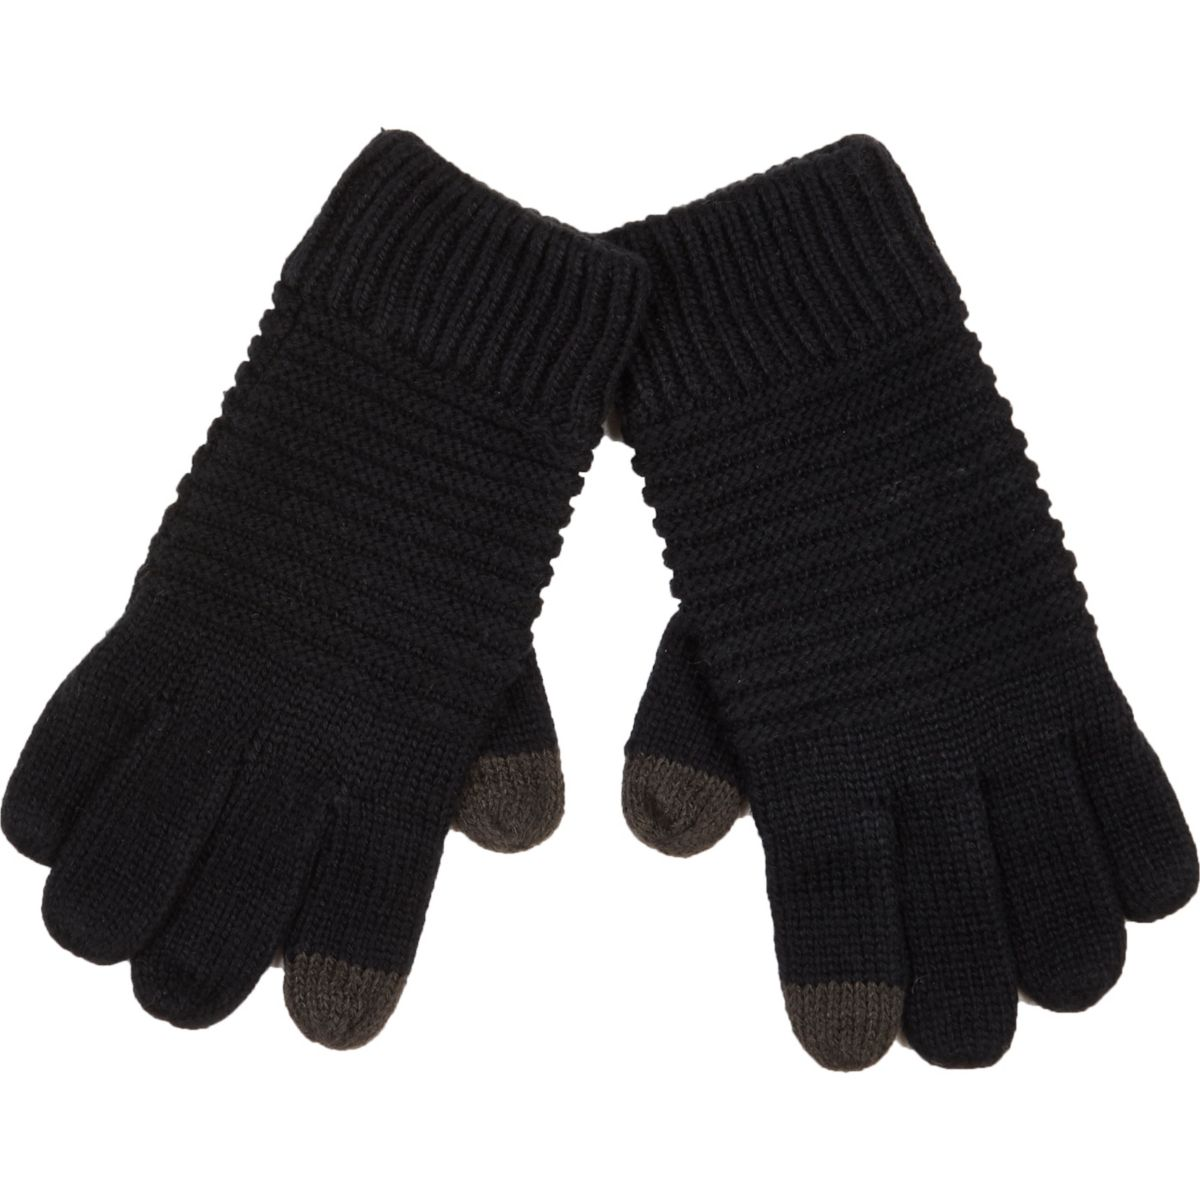 Black ribbed knitted touch screen gloves